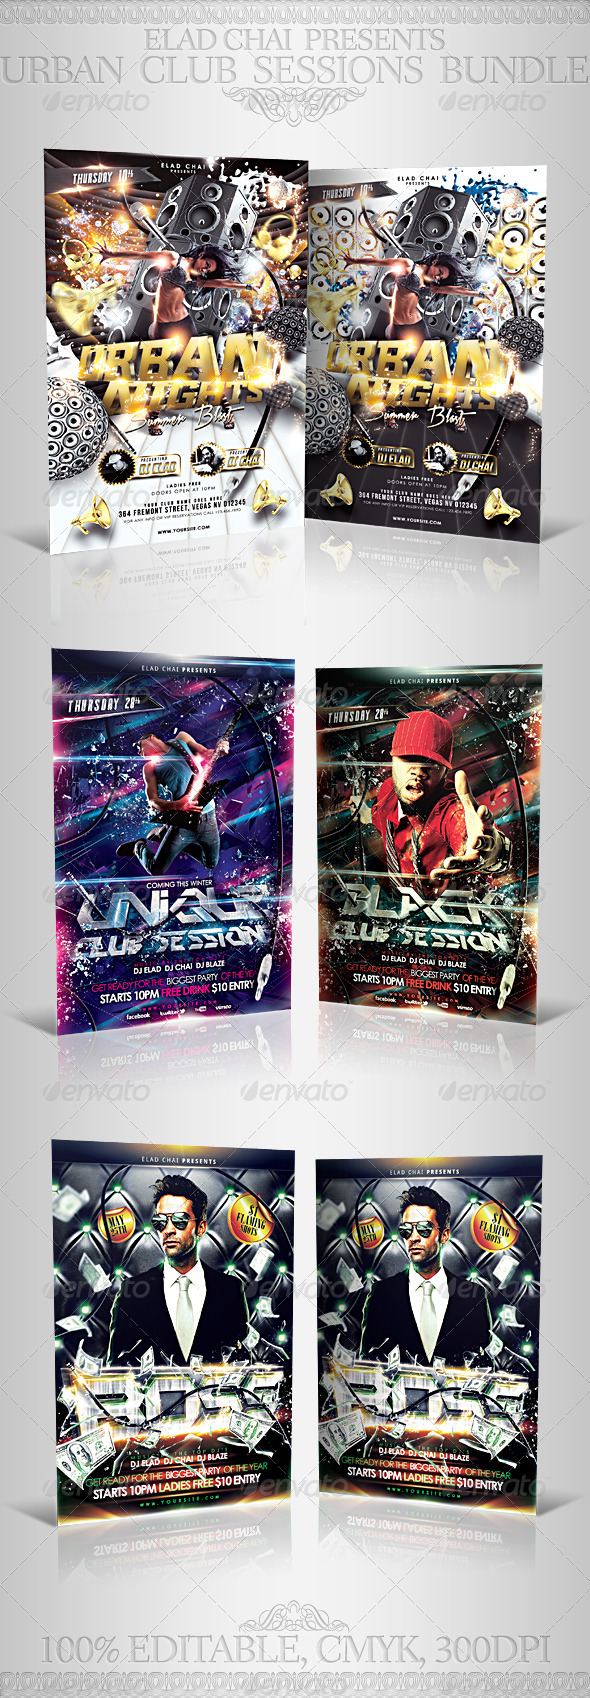 GraphicRiver Urban Club Sessions Party Bundle 5343092